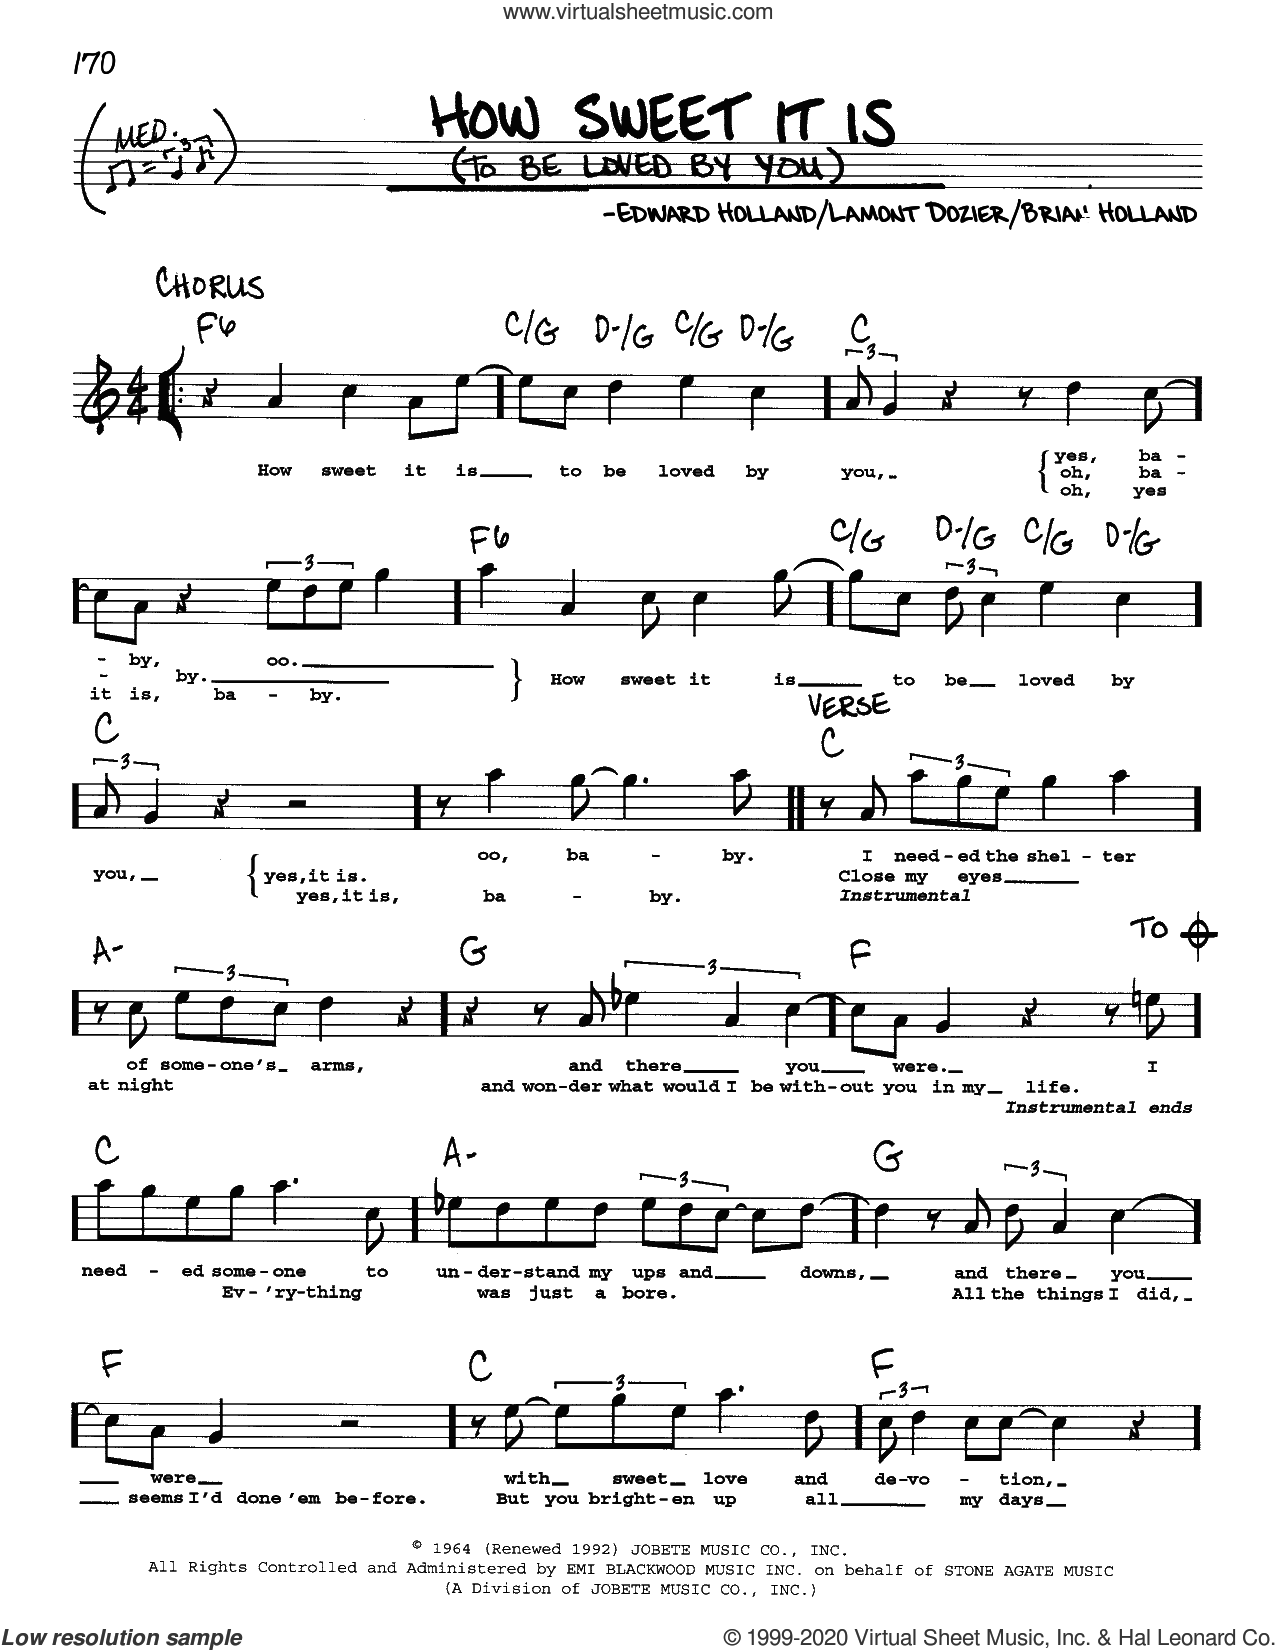 How Sweet It Is (To Be Loved By You) sheet music for voice and other instruments (real book) by Marvin Gaye, James Taylor, Brian Holland, Eddie Holland and Lamont Dozier, intermediate skill level